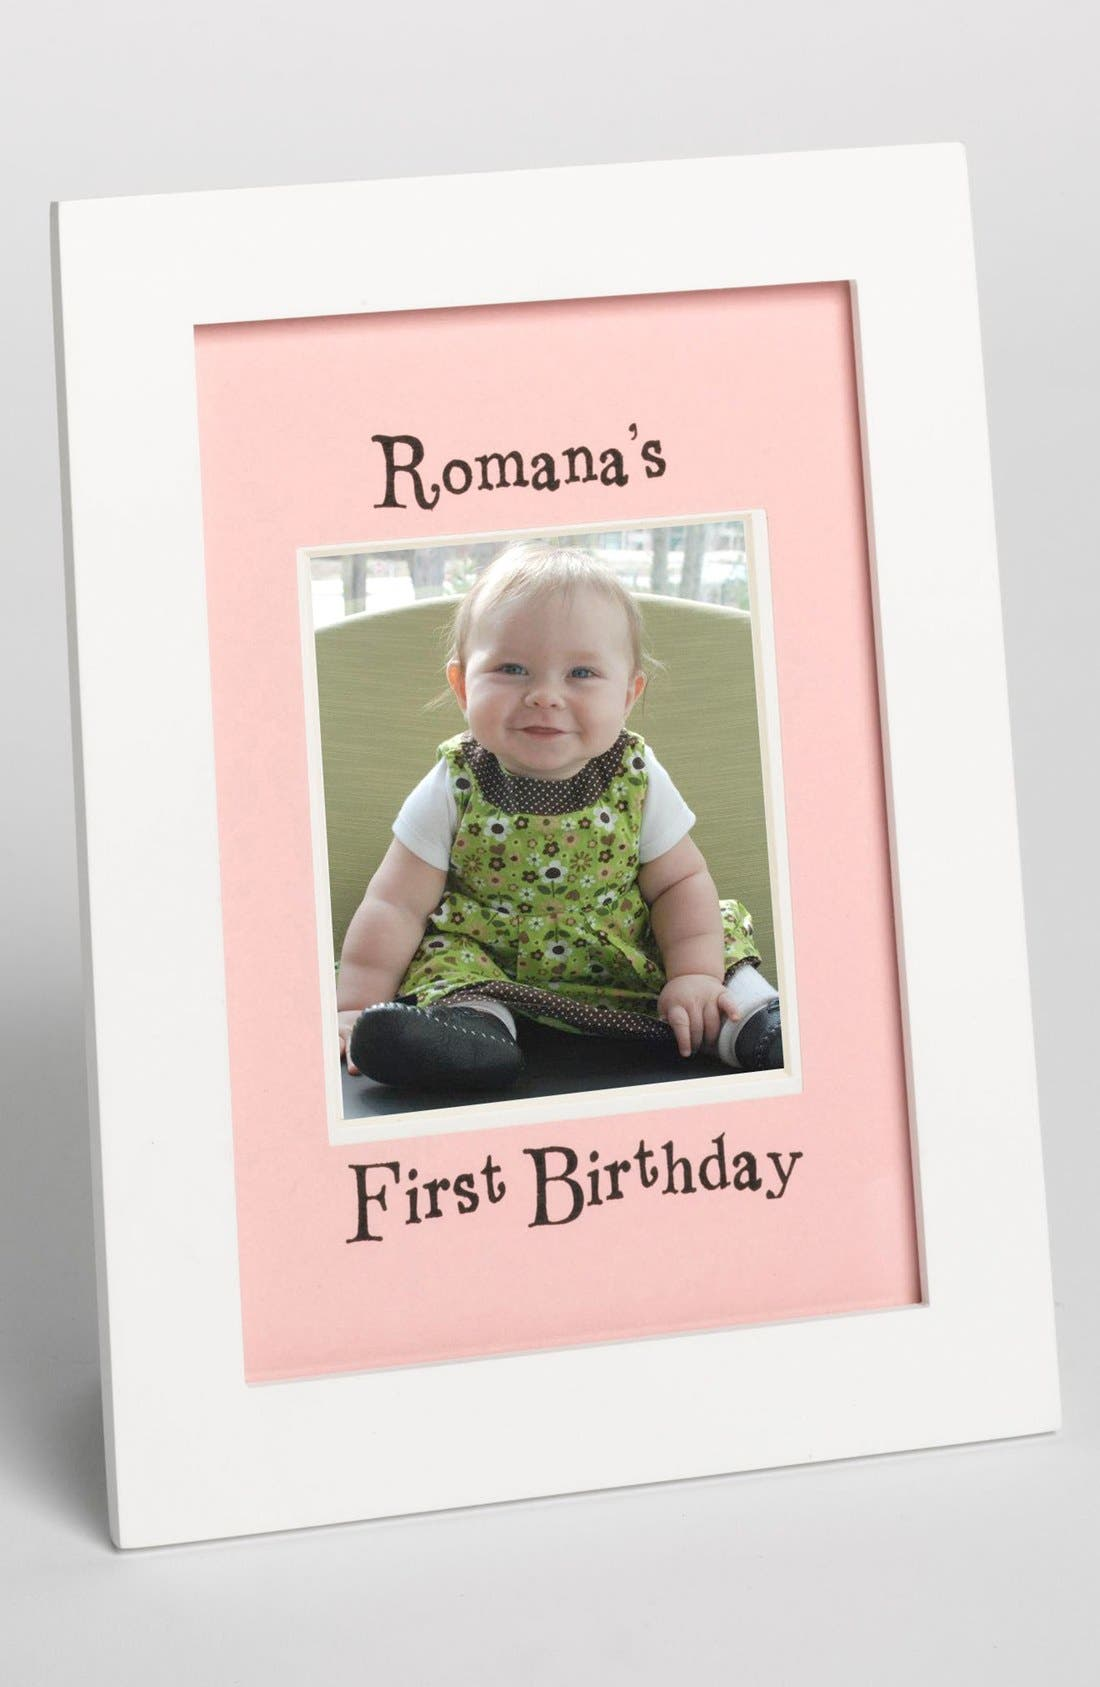 Main Image - FRAME PINK FIRST BIRTHDAY